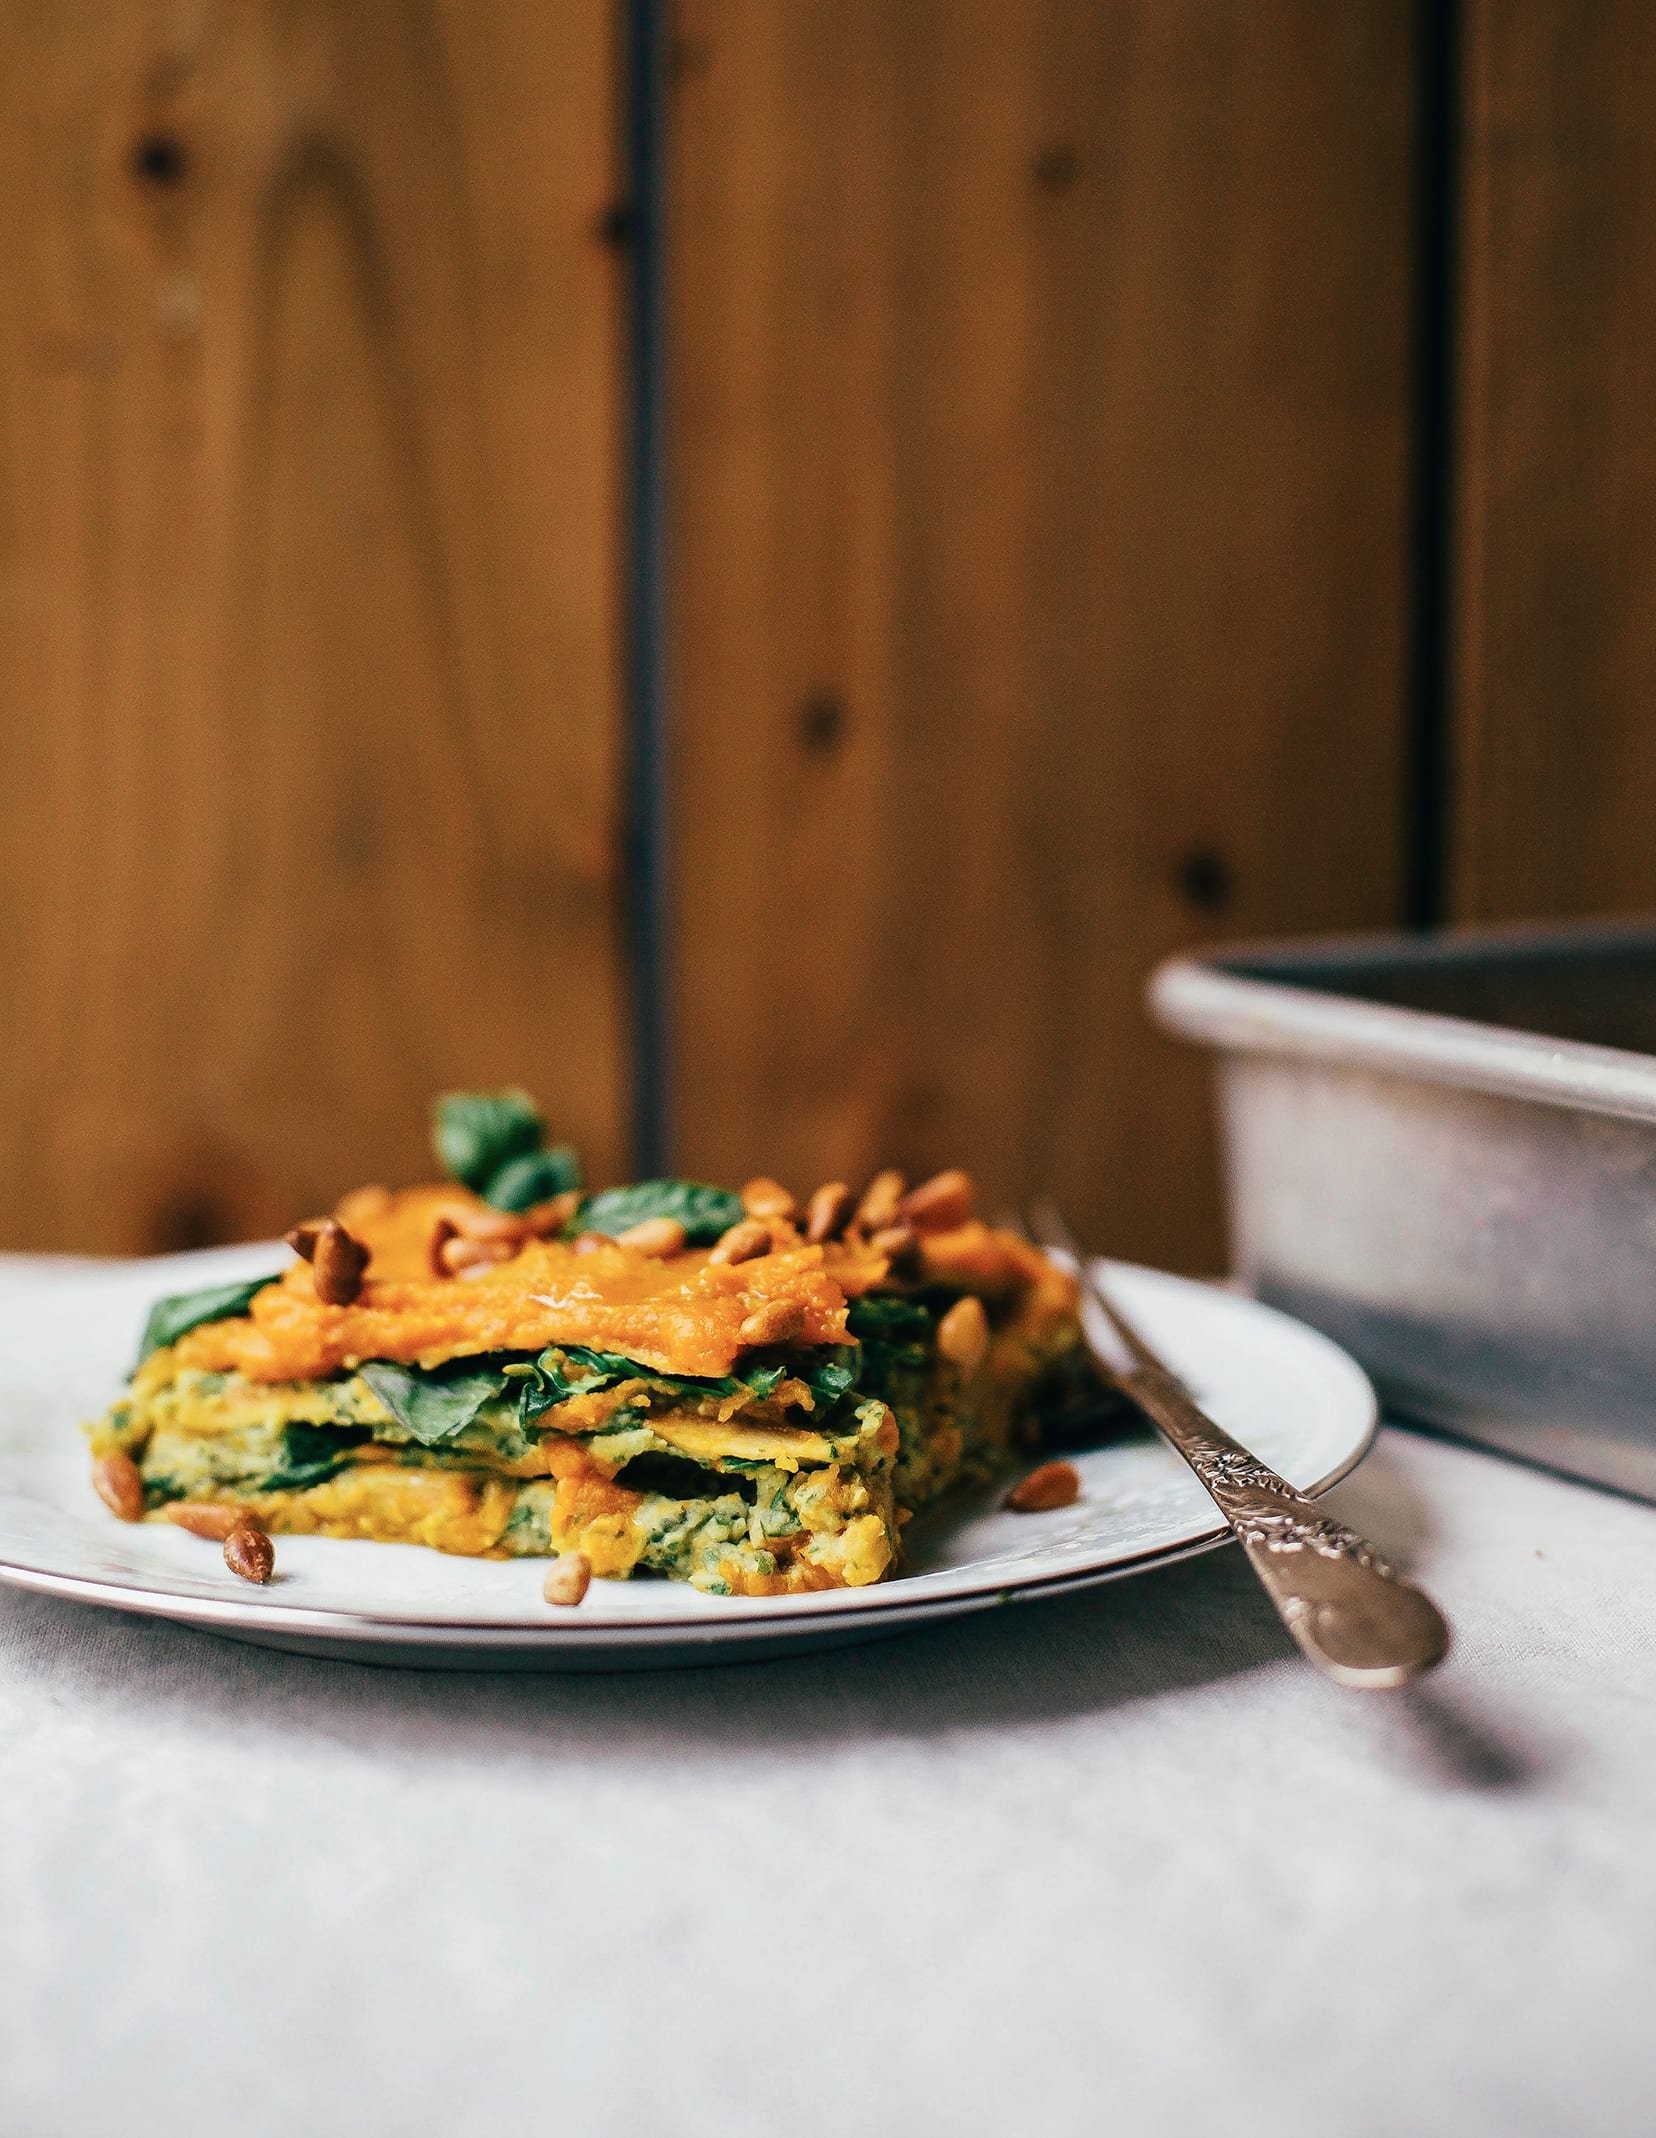 Butternut and Pesto Cream Lasagna from The First Mess Cookbook